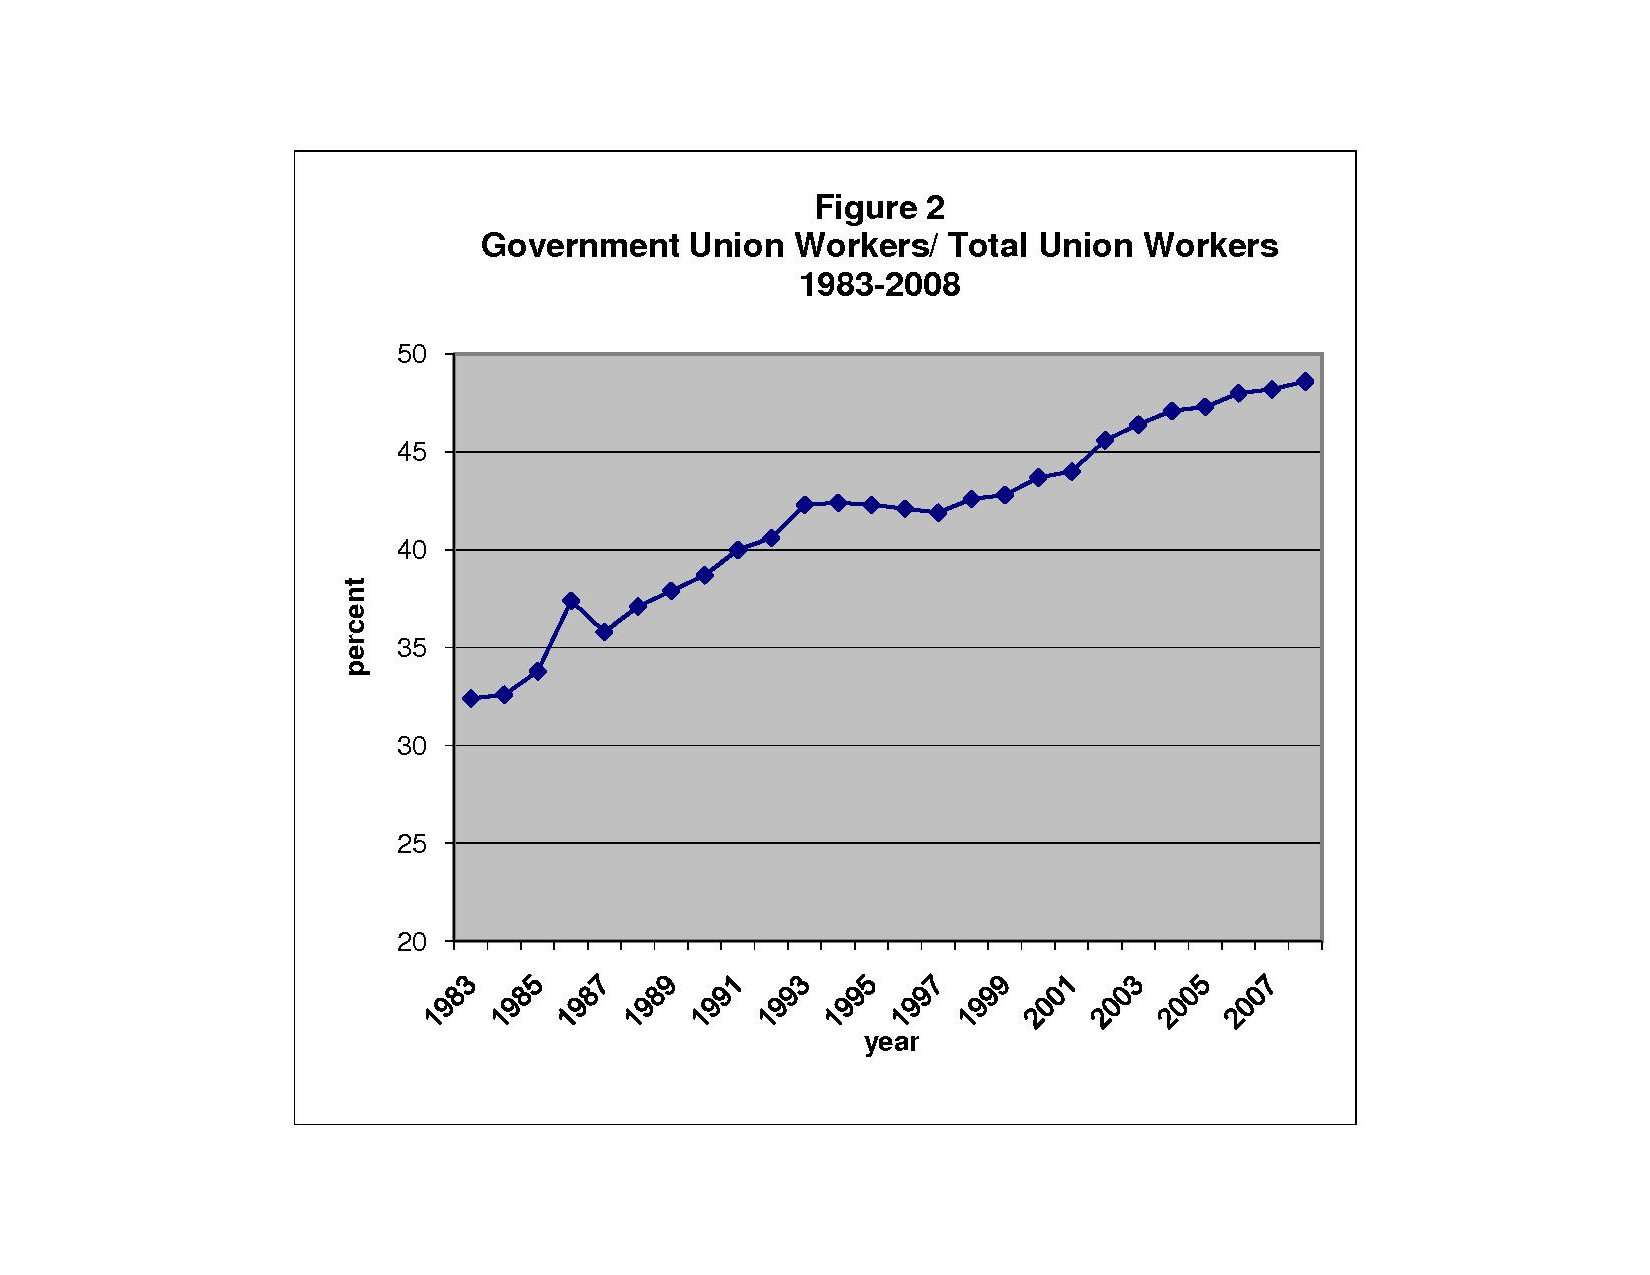 Figure 2. Government Union Works / Total Workers, 1983-2008